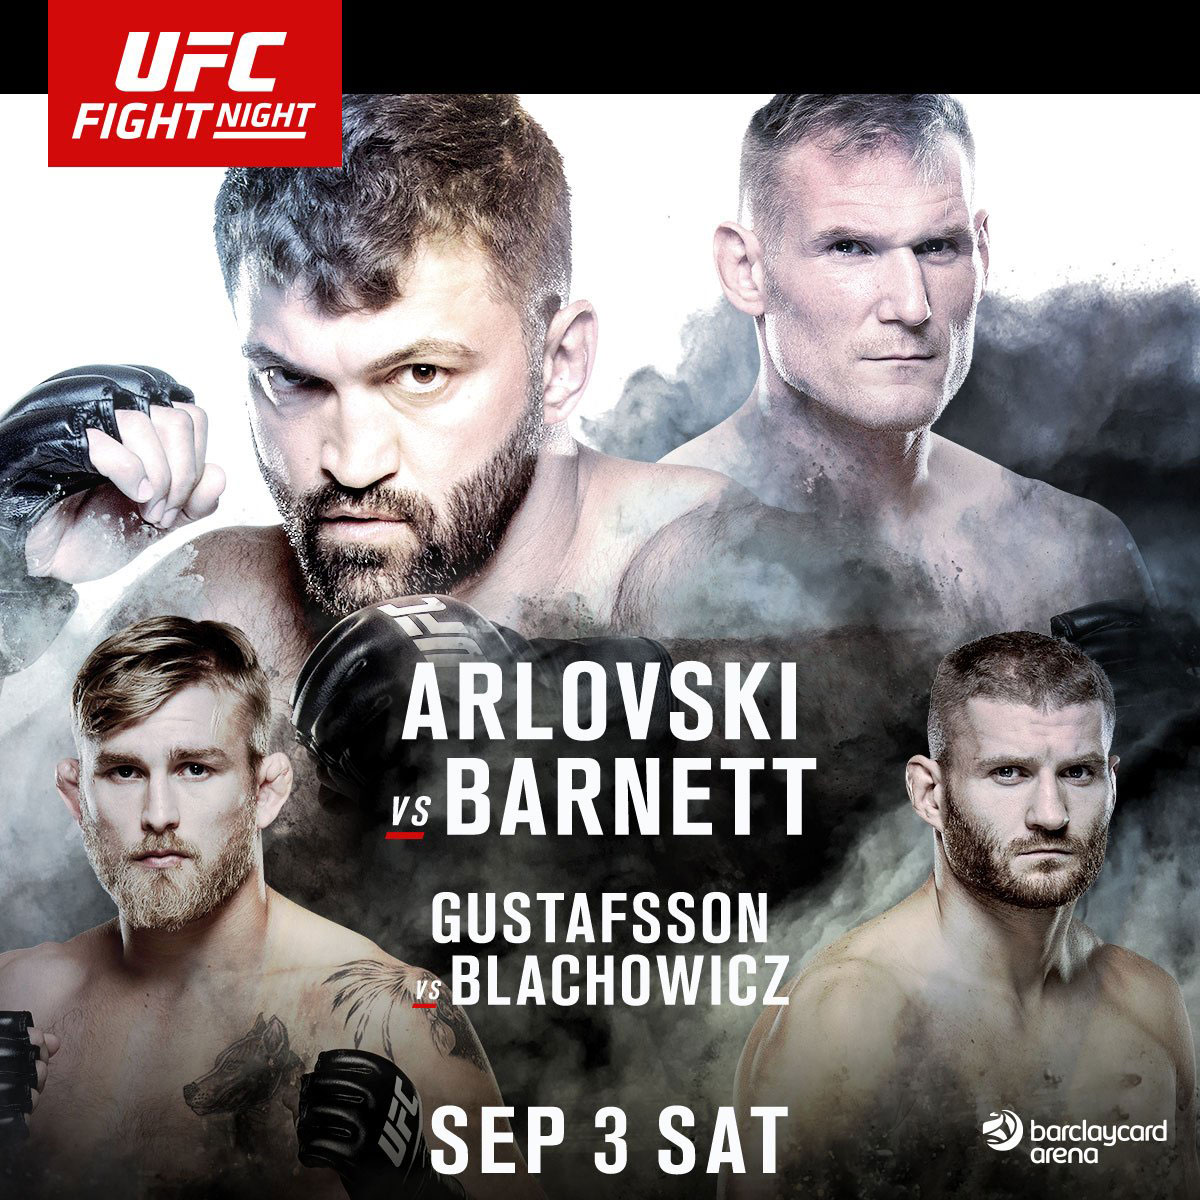 Poster/affiche UFC Fight Night 93